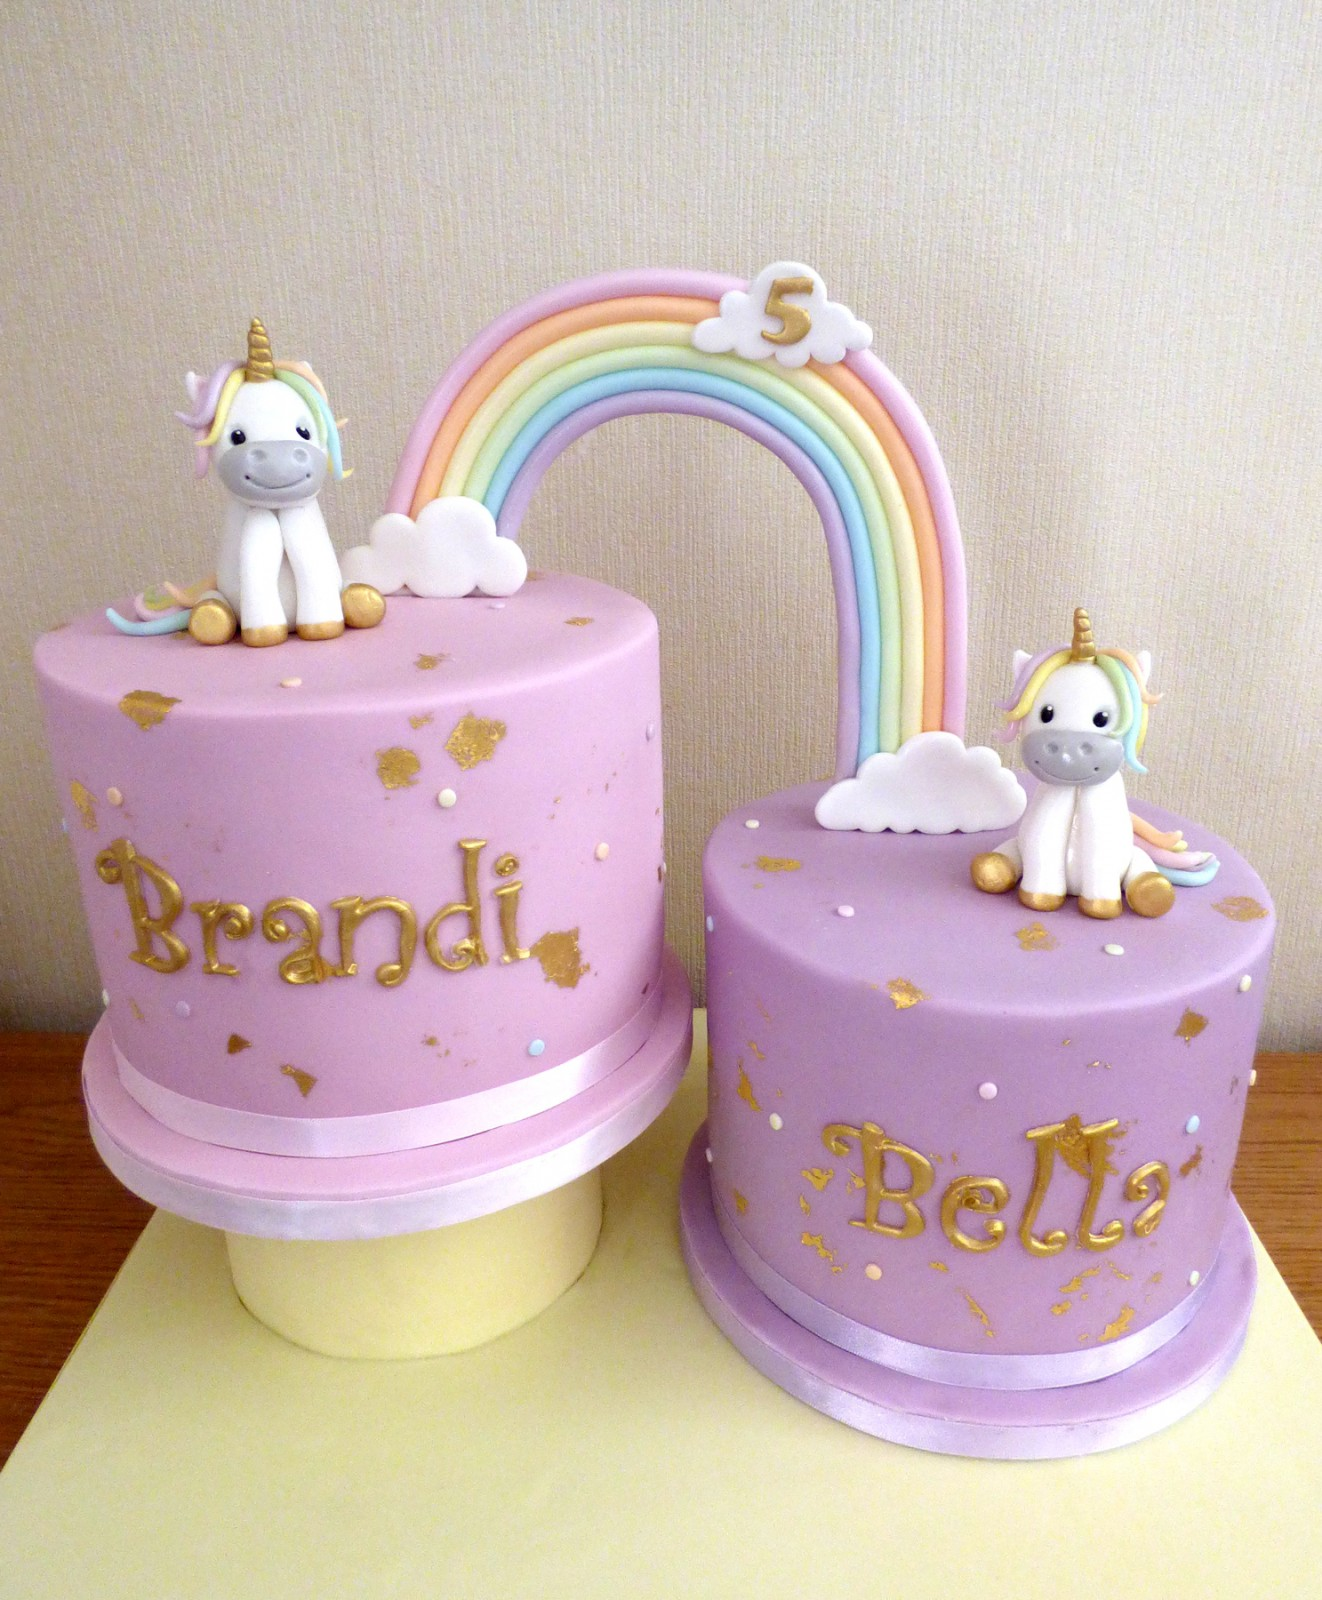 Marvelous Rainbow Linked Unicorns Cakes For Twins Birthday Susies Cakes Funny Birthday Cards Online Unhofree Goldxyz